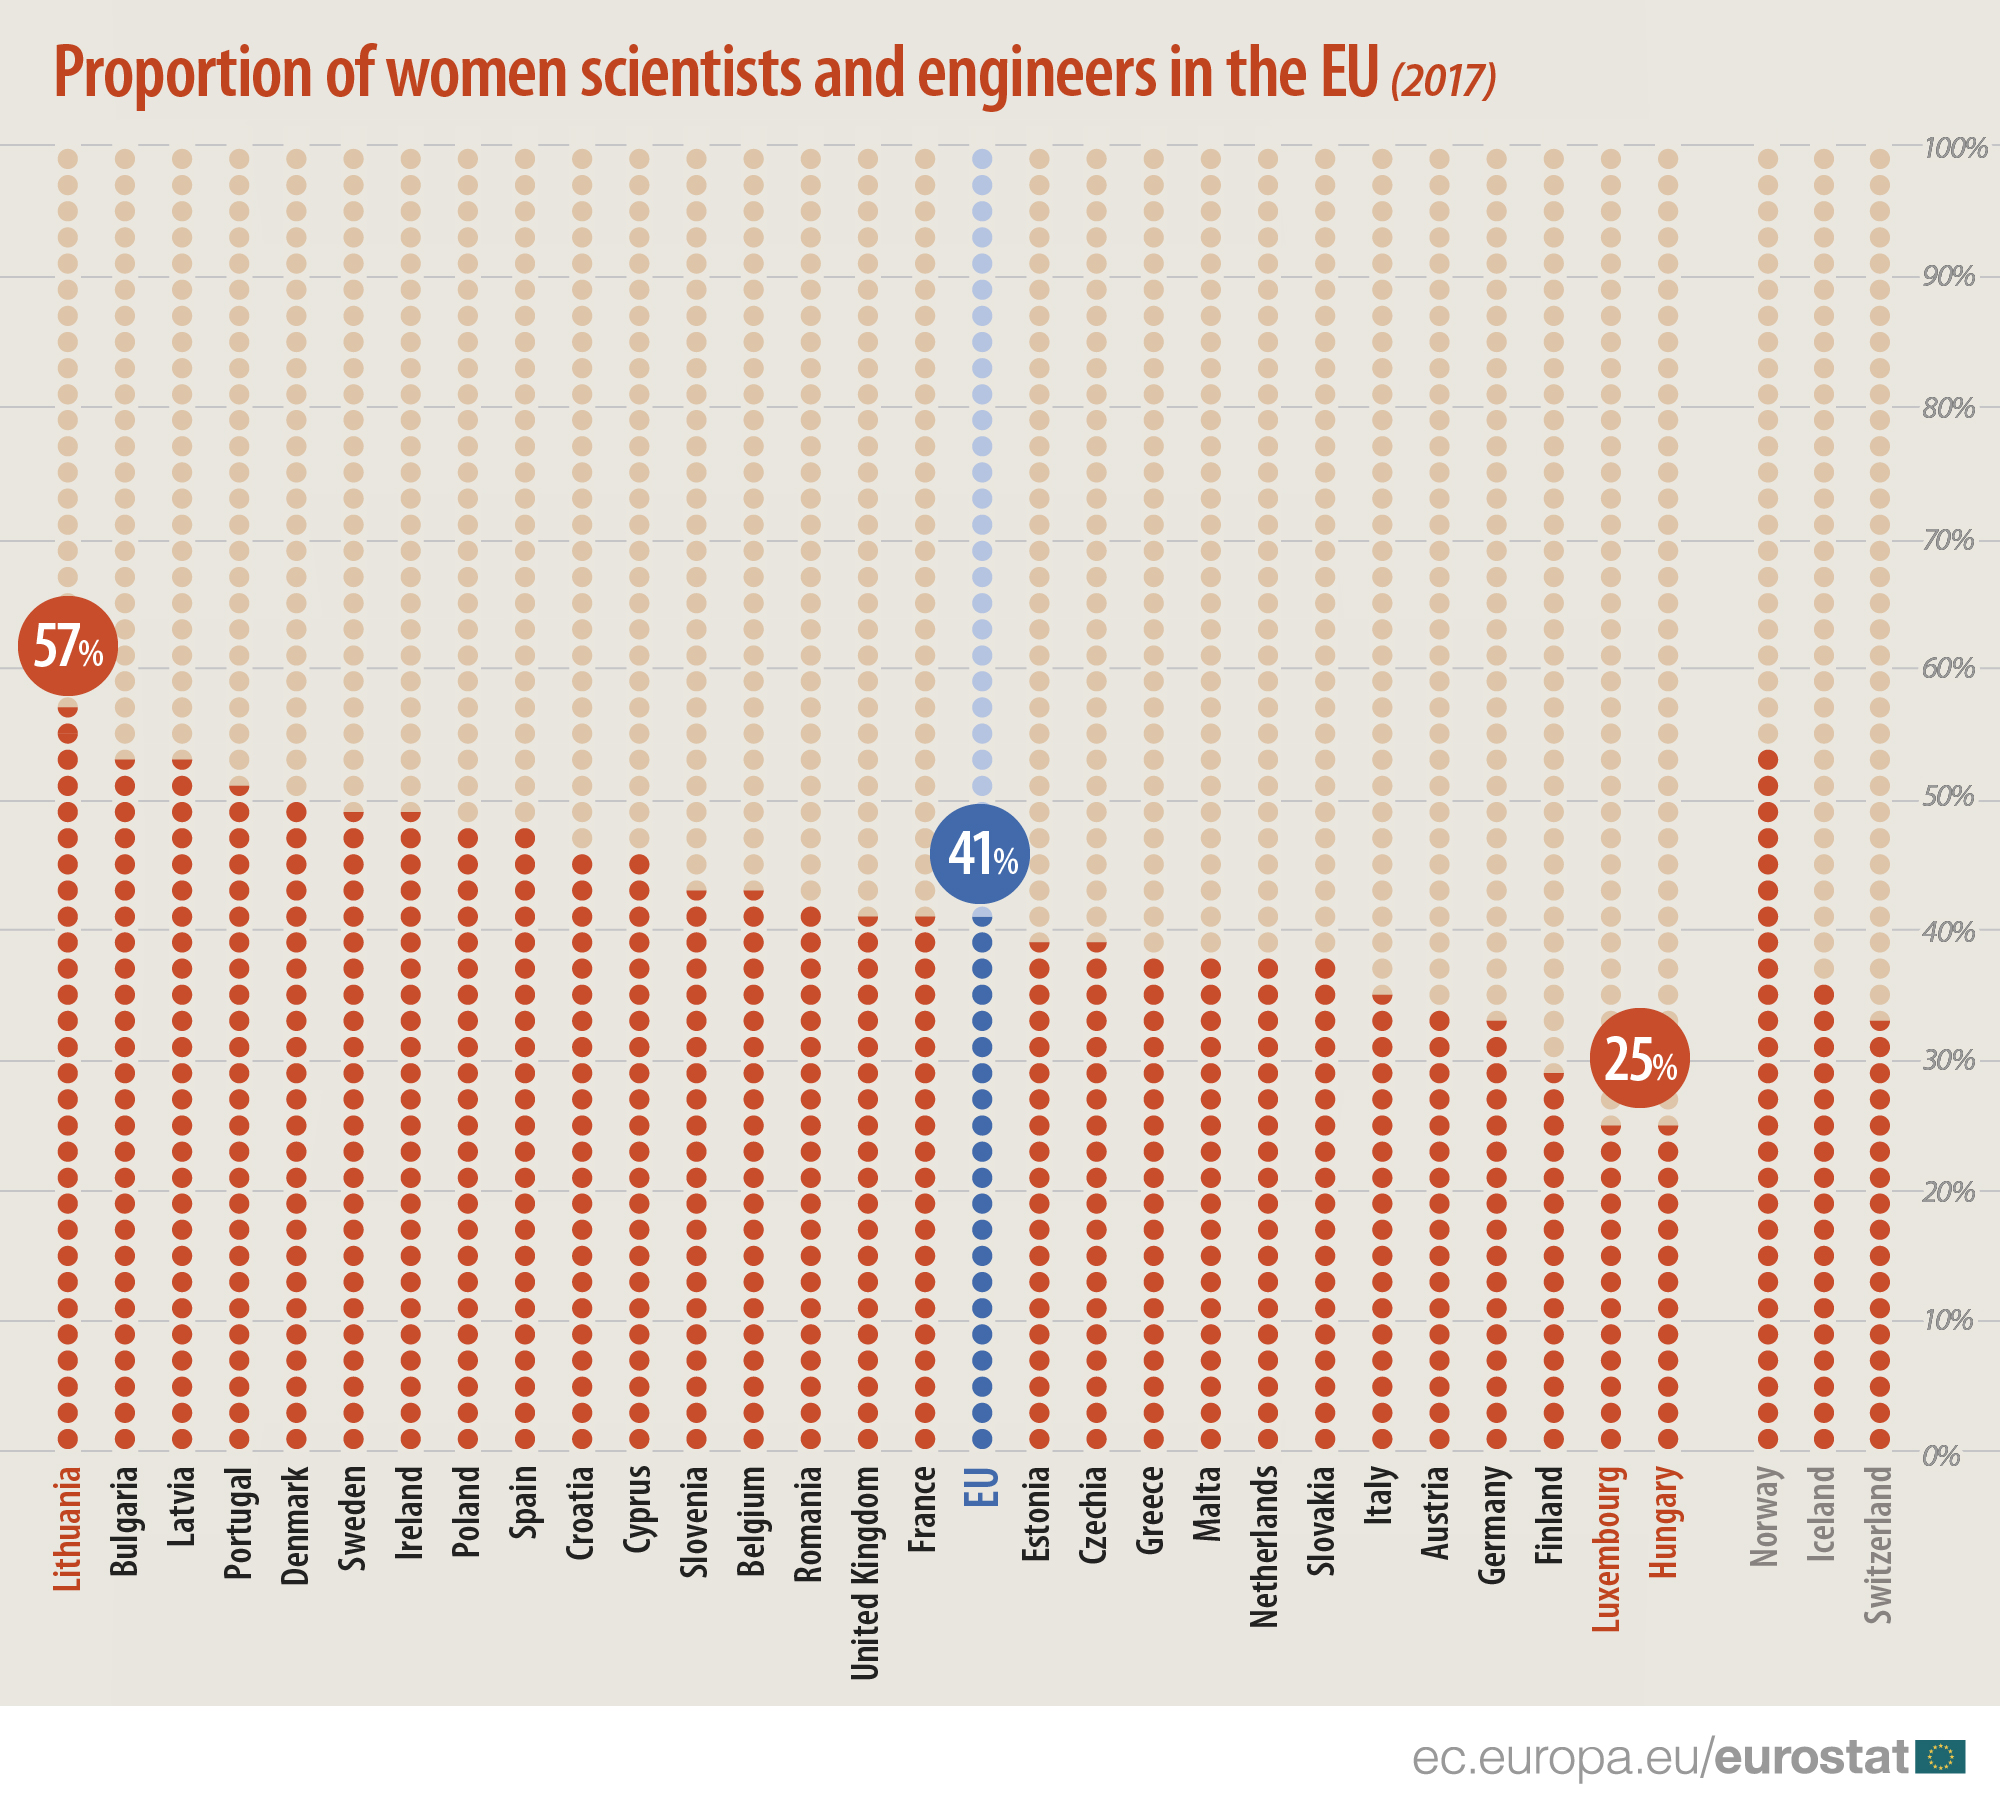 Proportion of women scientists in the EU - Infographic